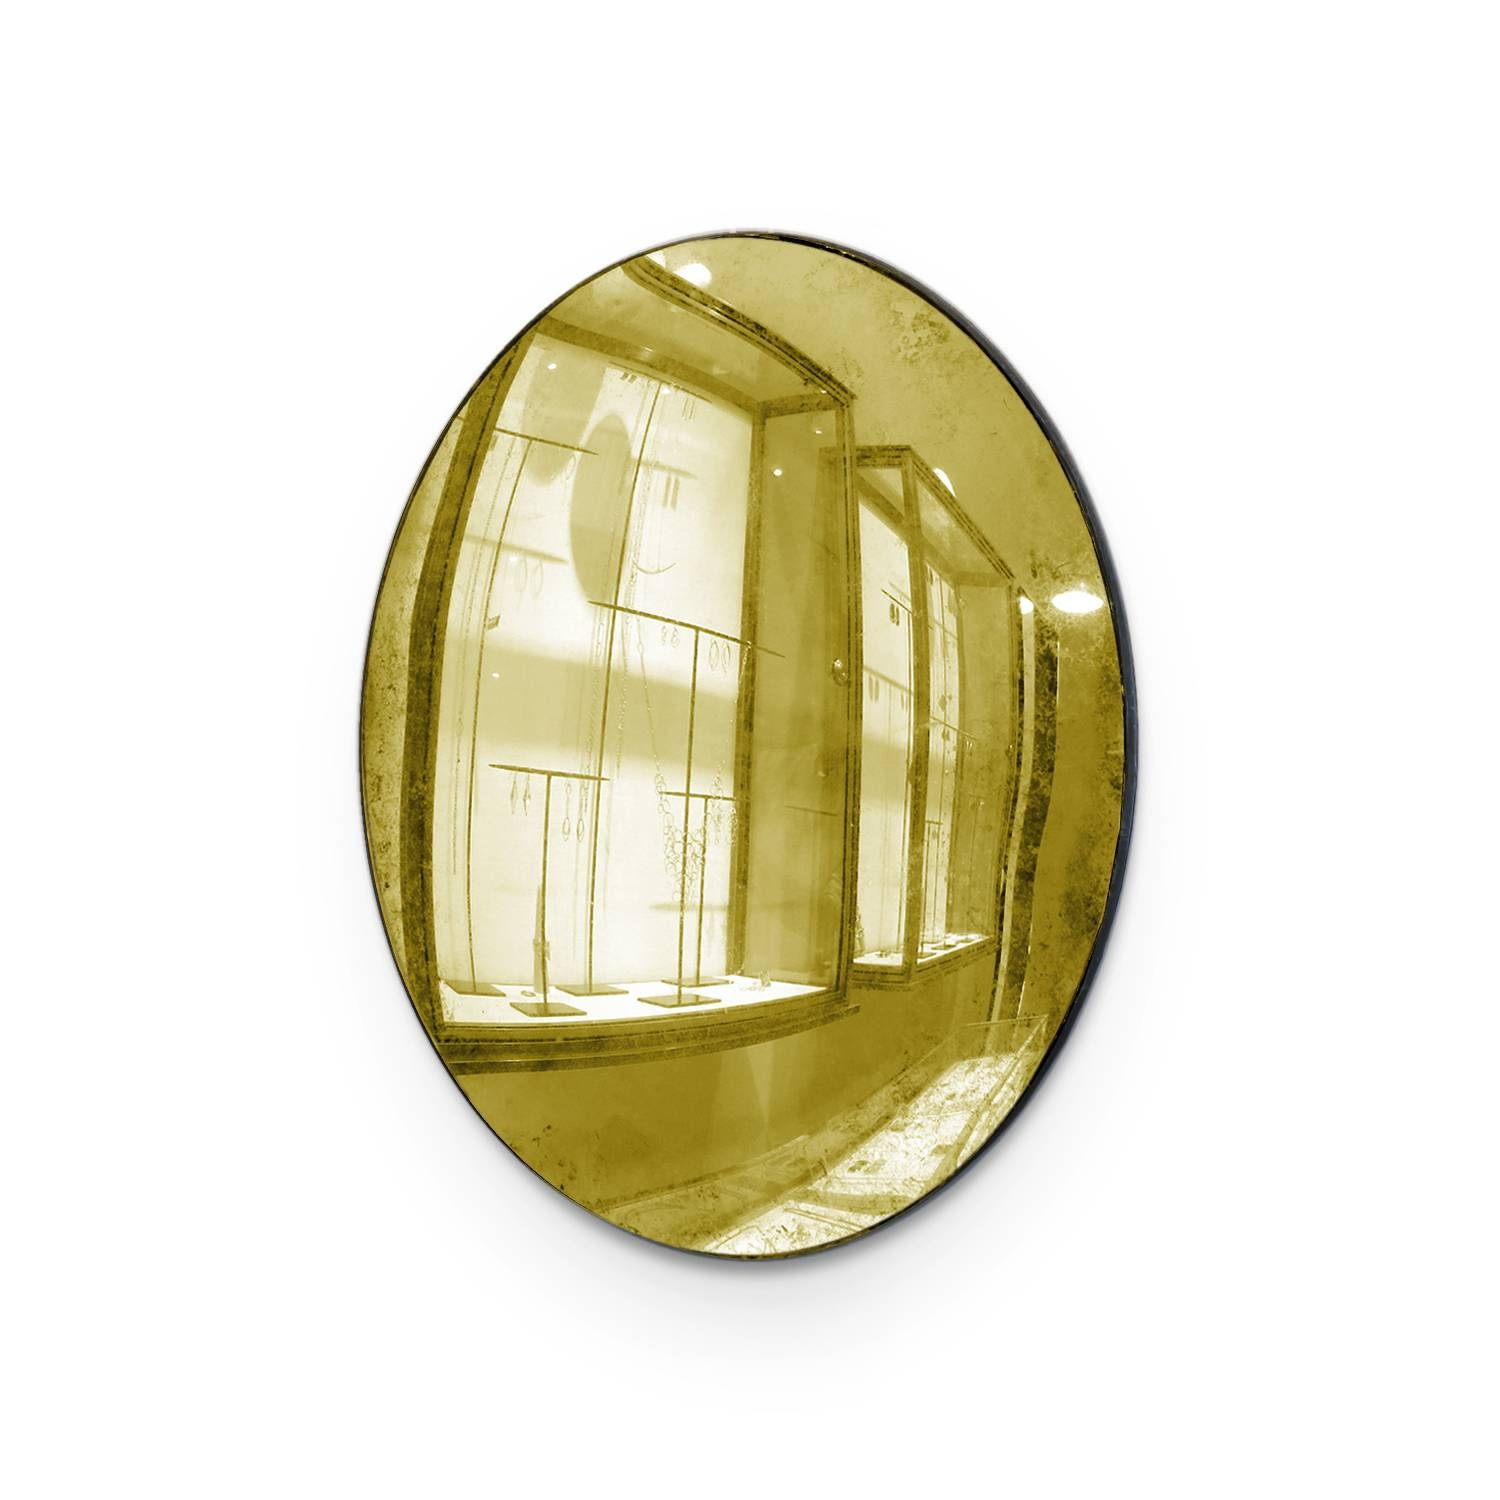 Maureen Fullam 9 X 12 Inch Oval Convex Gold Leafed Mirror – August Regarding Small Convex Mirrors (View 10 of 25)